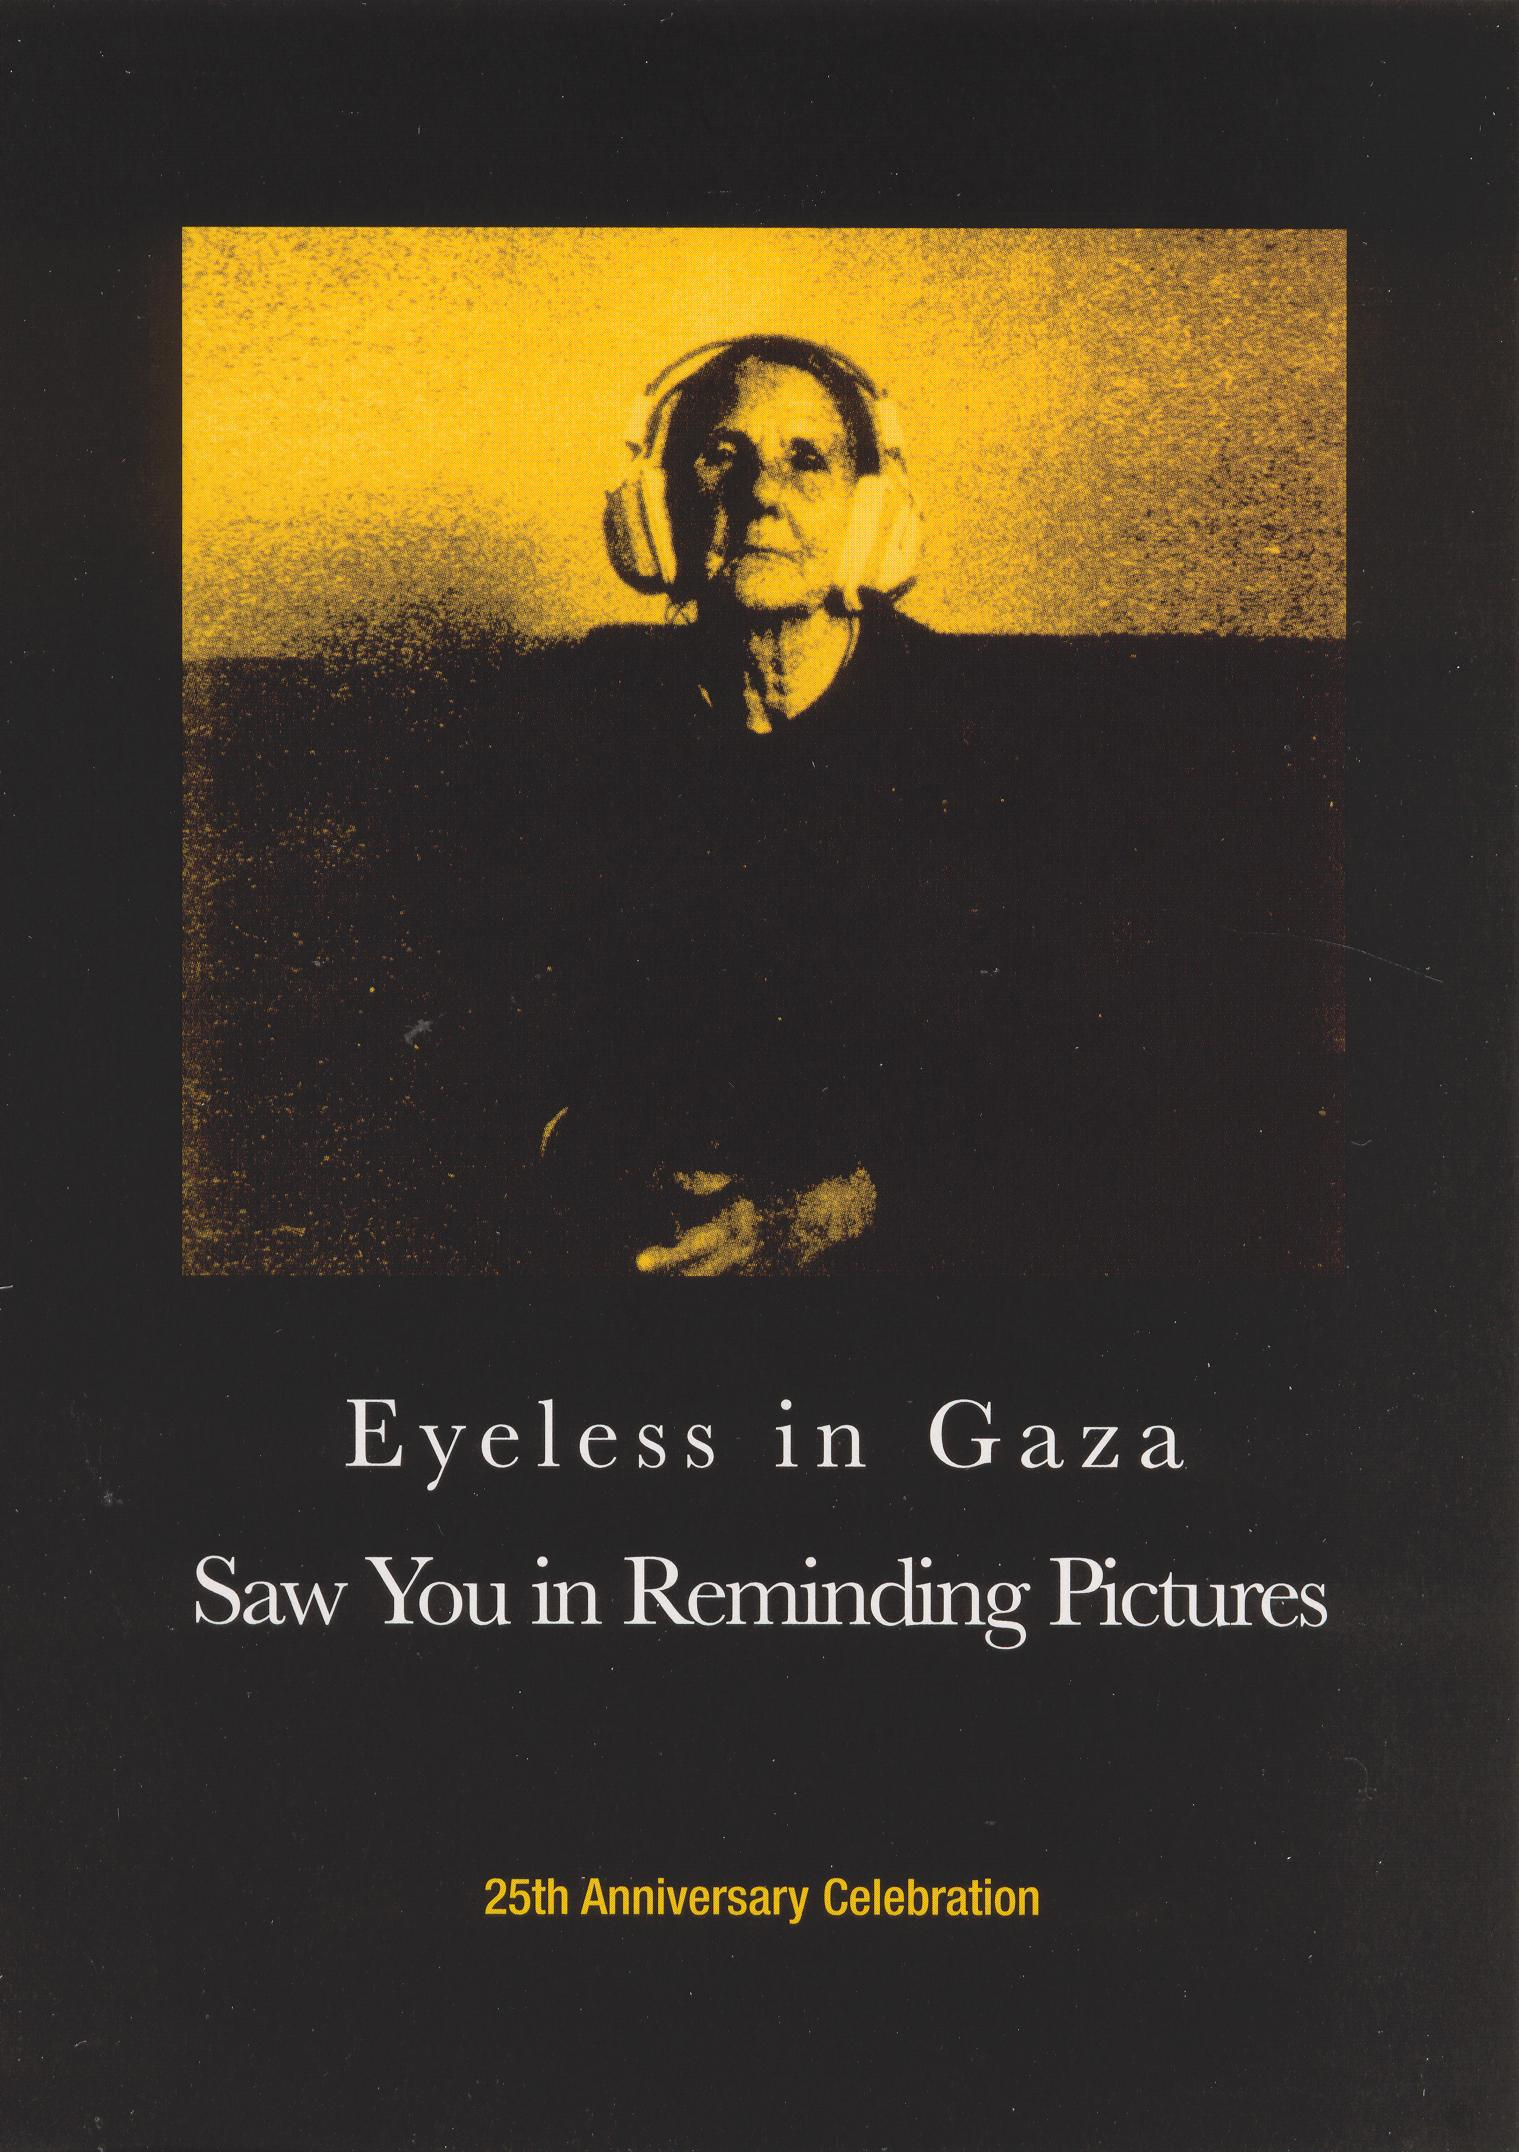 Eyeless in Gaza: Saw You in Reminding Pictures